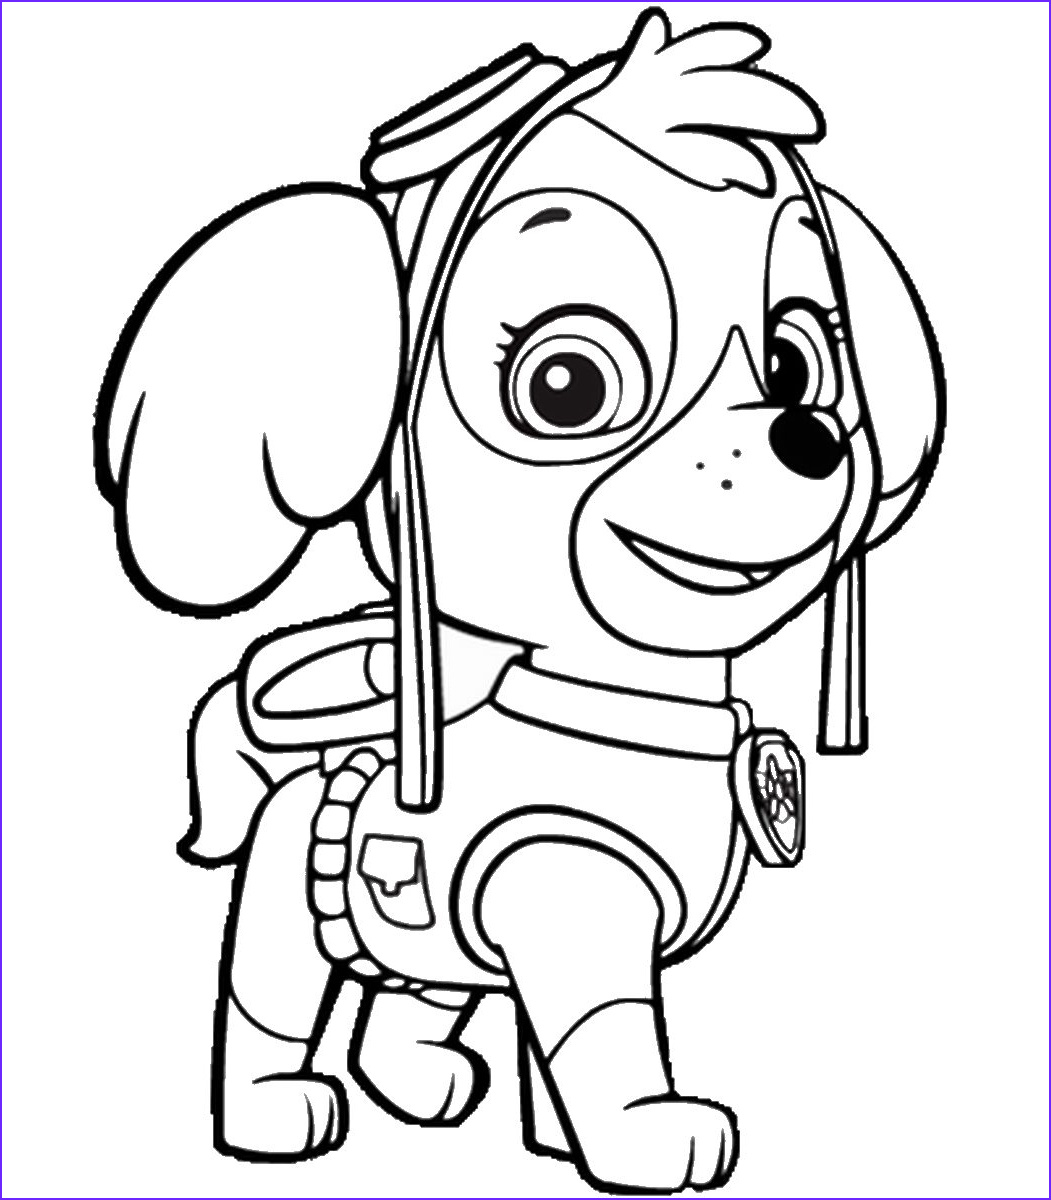 Paw Patrol Coloring Books Inspirational Photography Paw Patrol Coloring Pages